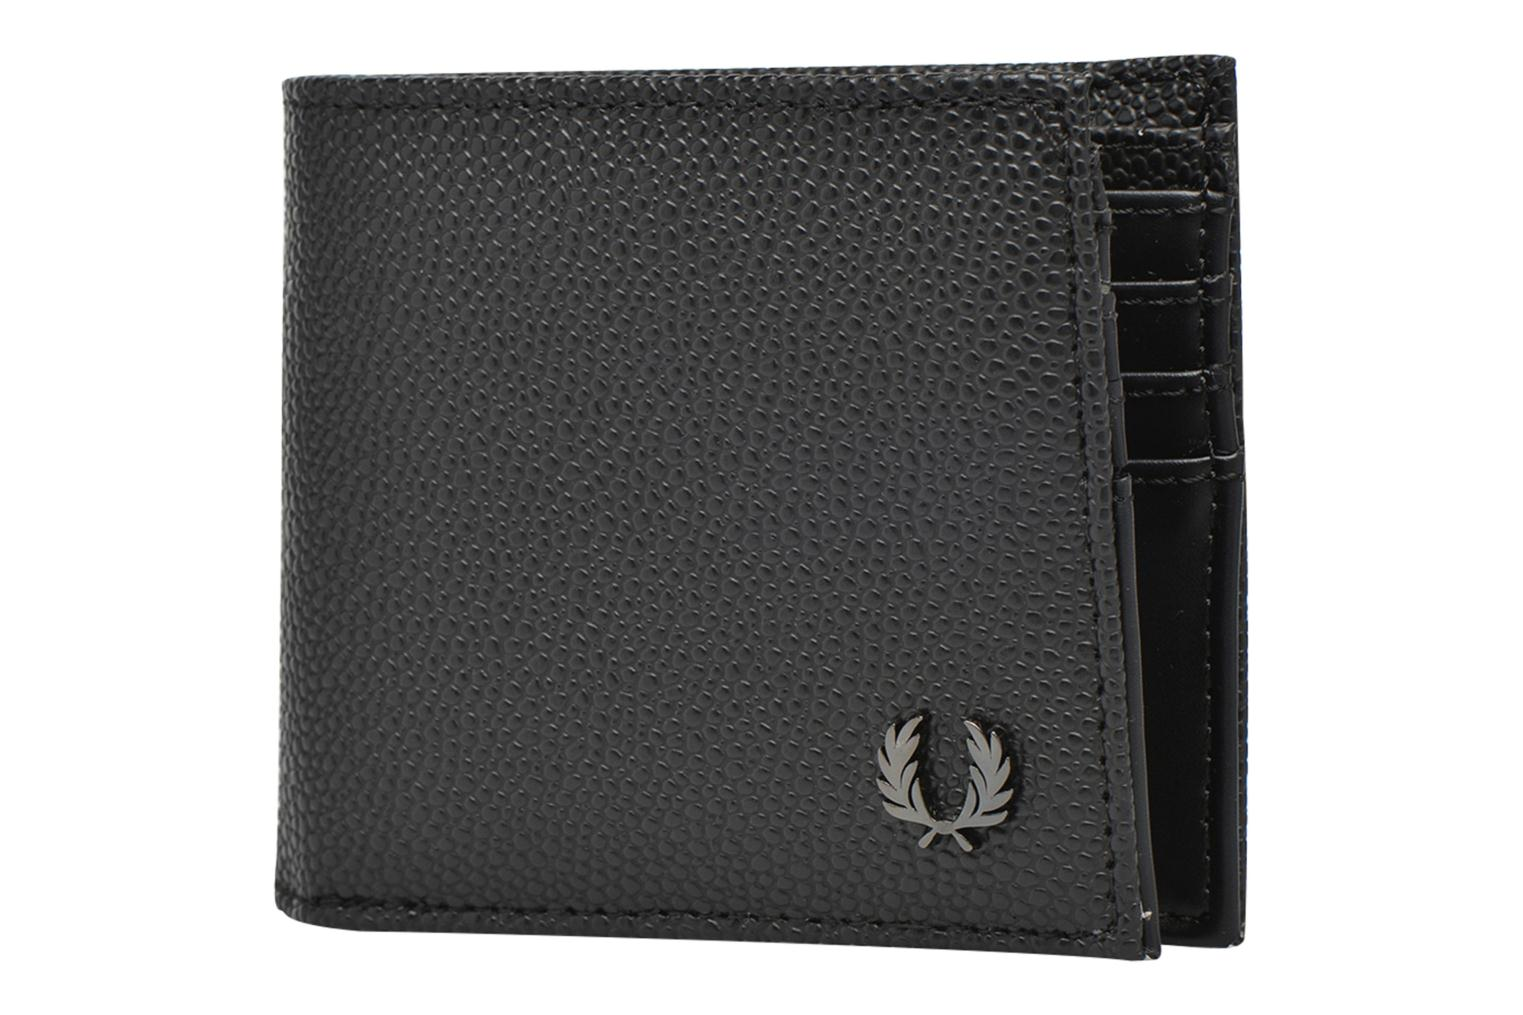 Portefeuille grainé Black